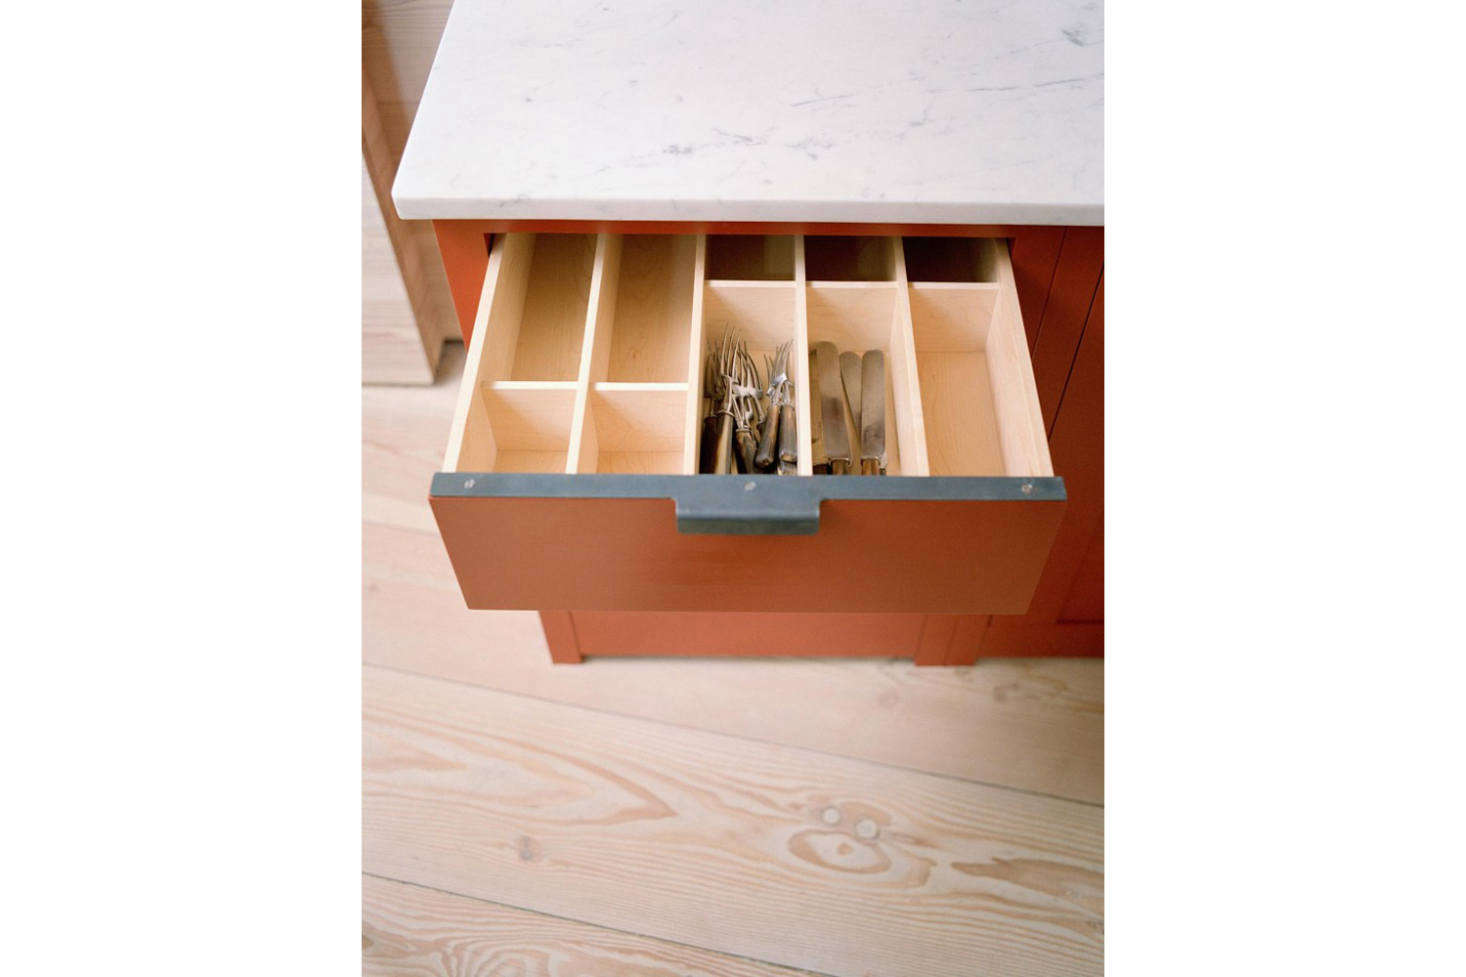 The work island and cabinets are from Plain English, along with the custom steel edge pulls seen here.